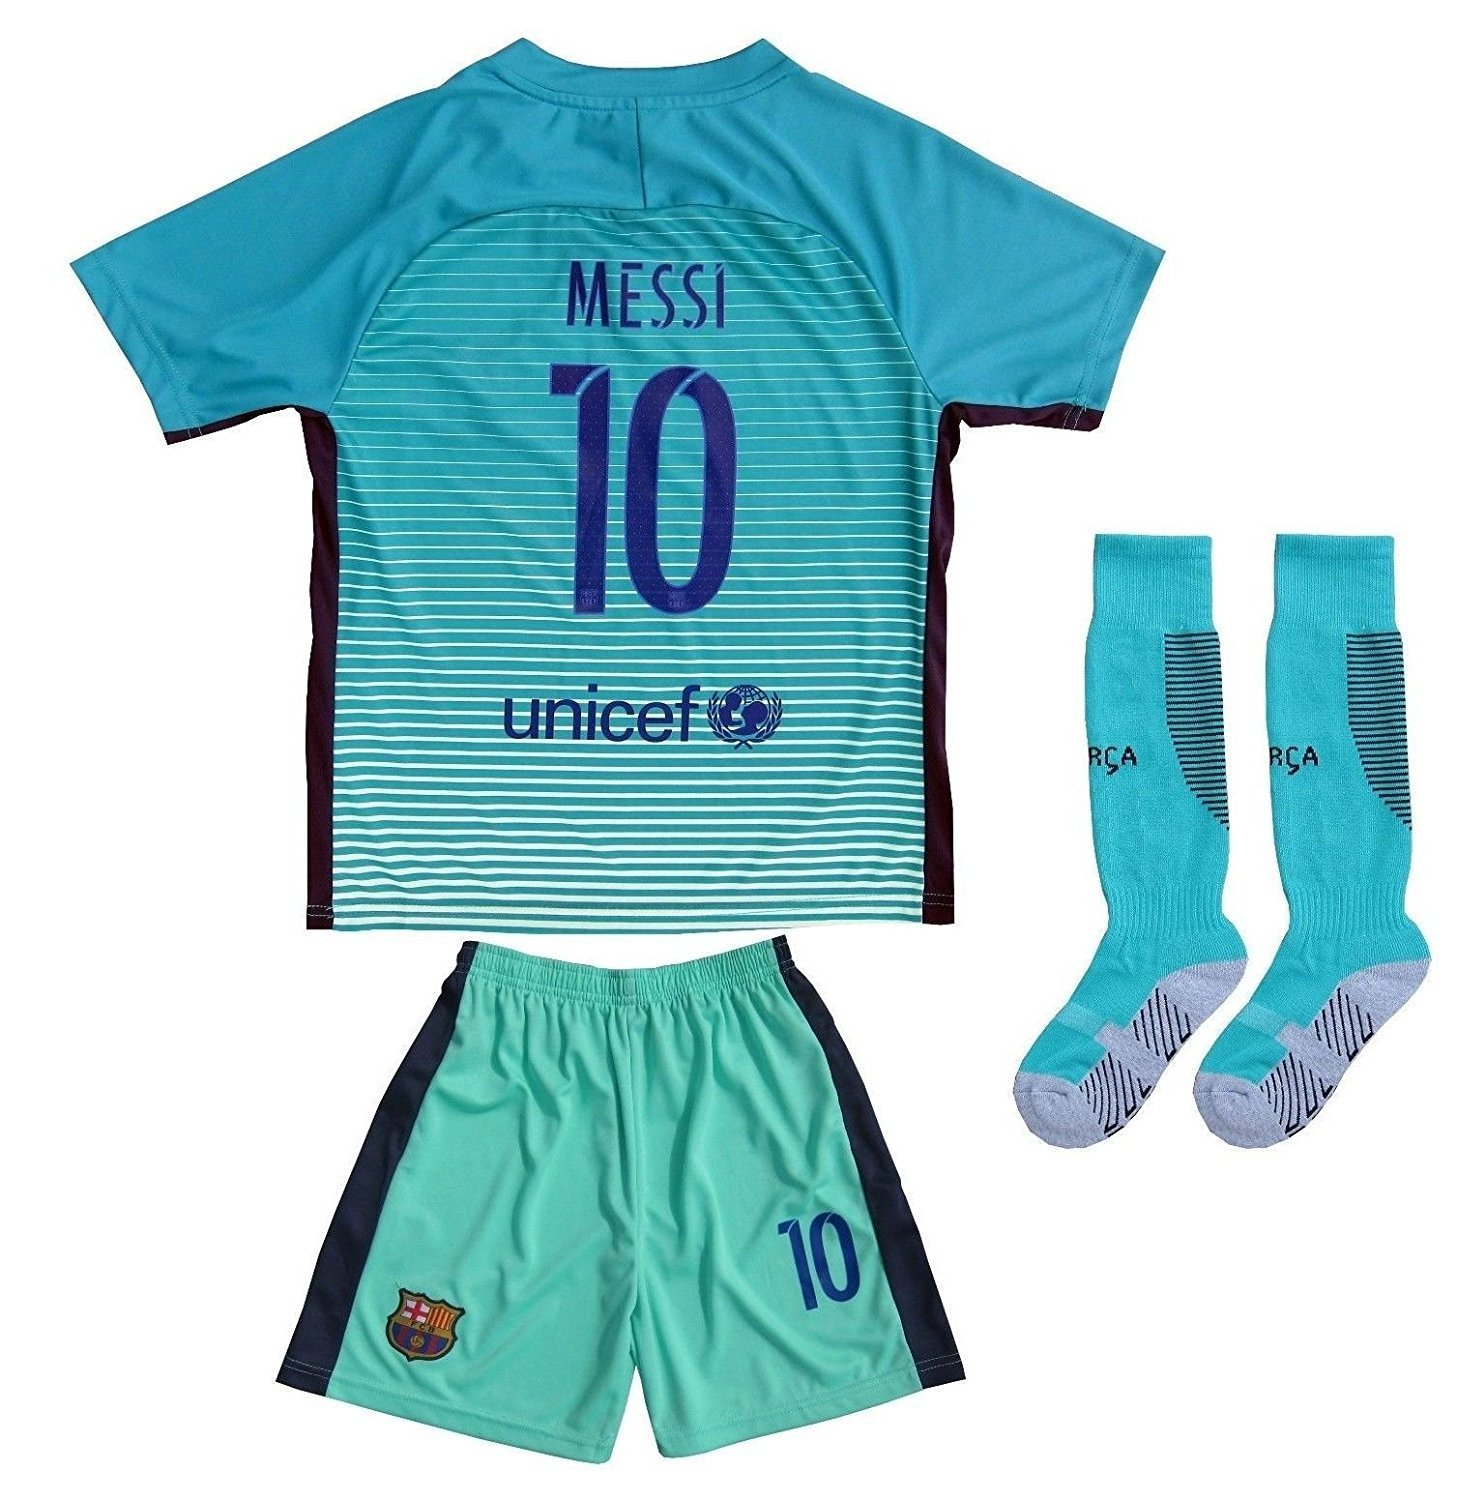 584383ca1 2016 2017 BARCELONA  10 LIONEL MESSI THIRD GREEN SOCCER JERSEY   SHORTS  YOUTH SIZES